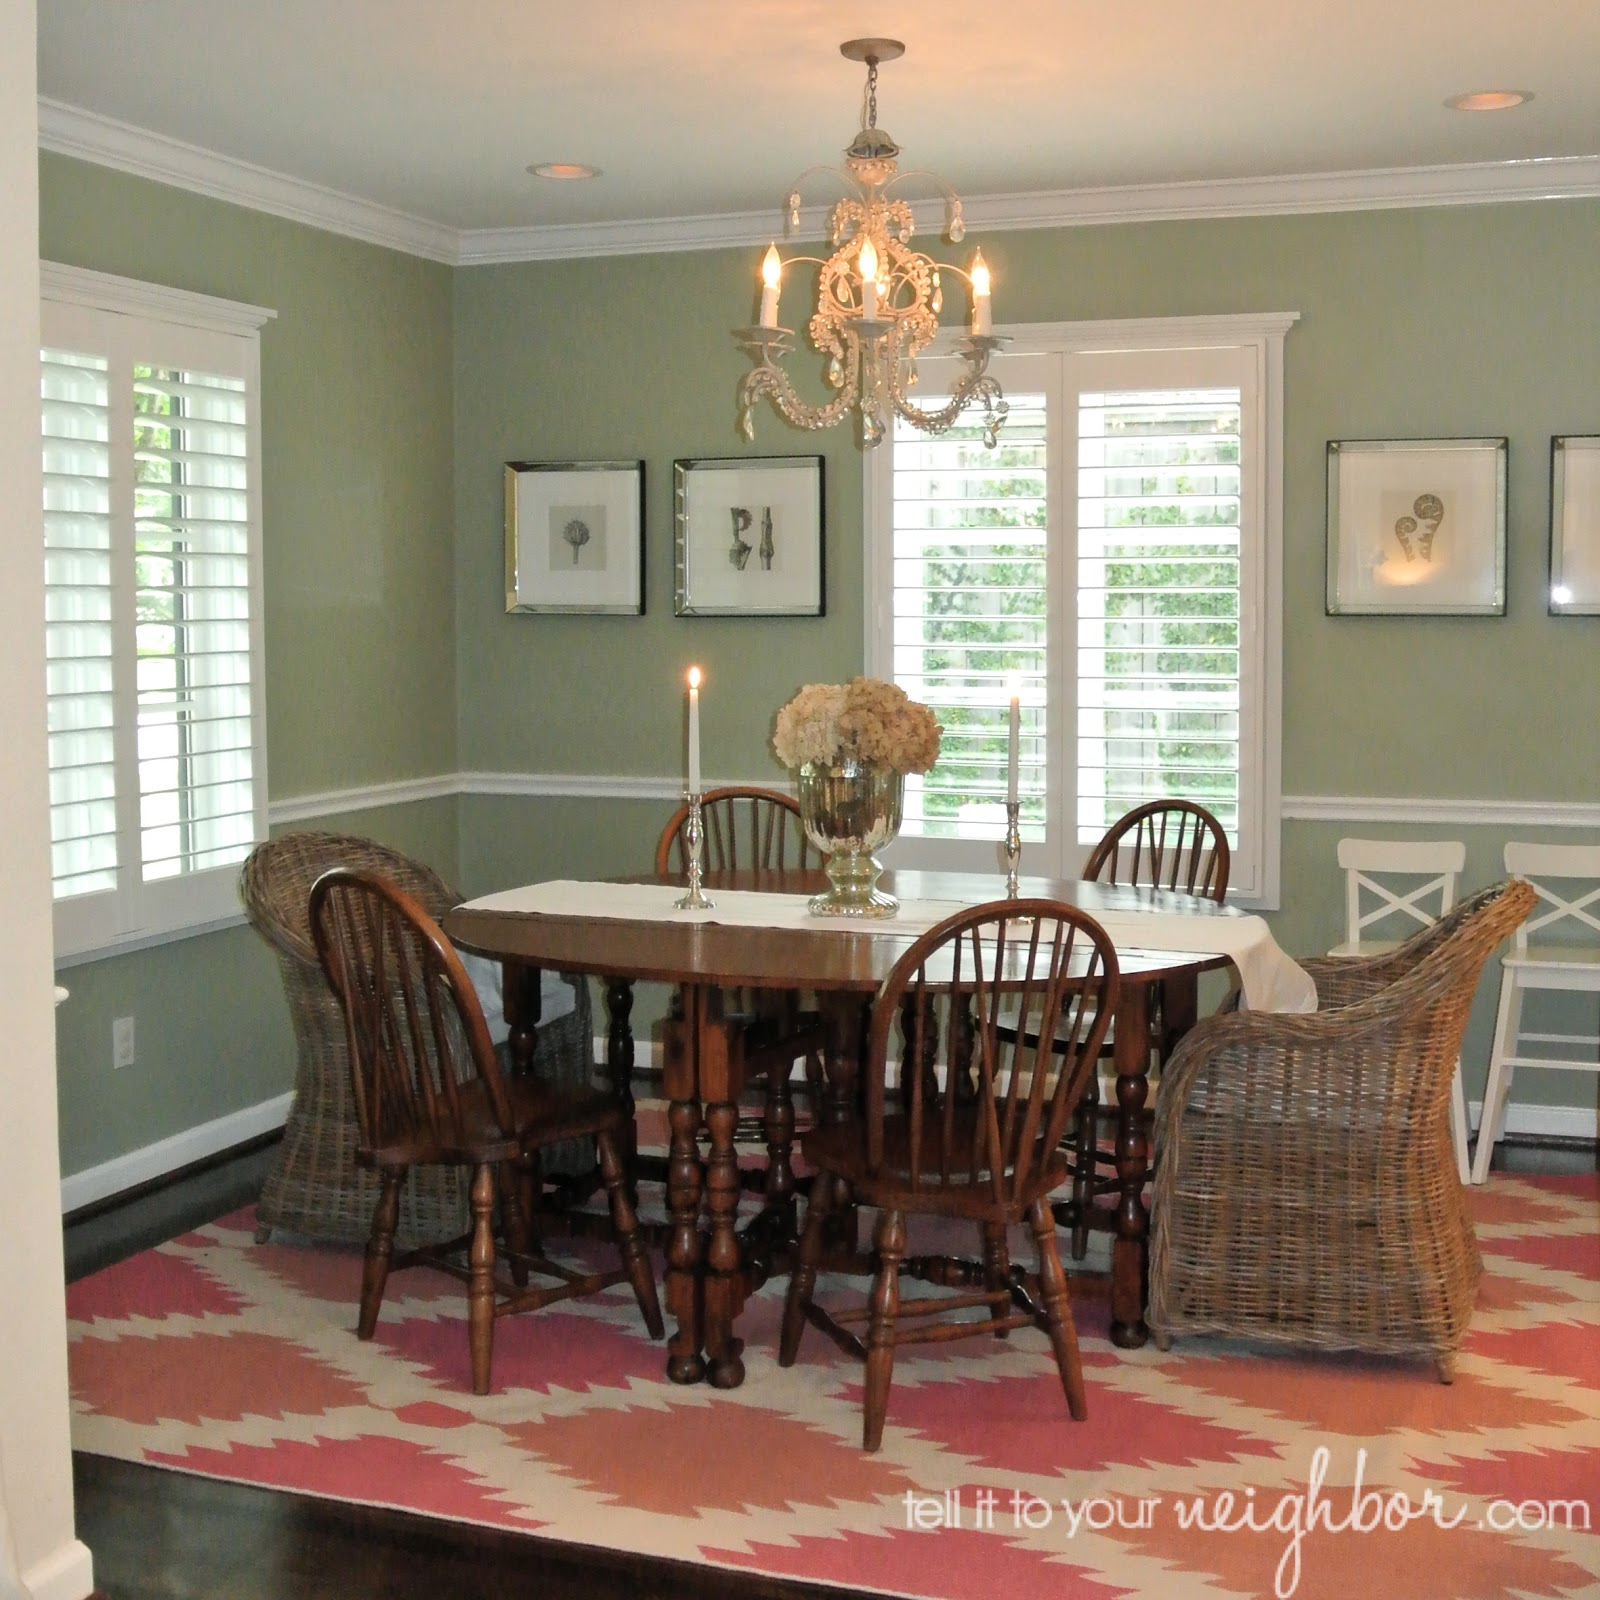 tell it to your neighbor!: Dining Room Rug